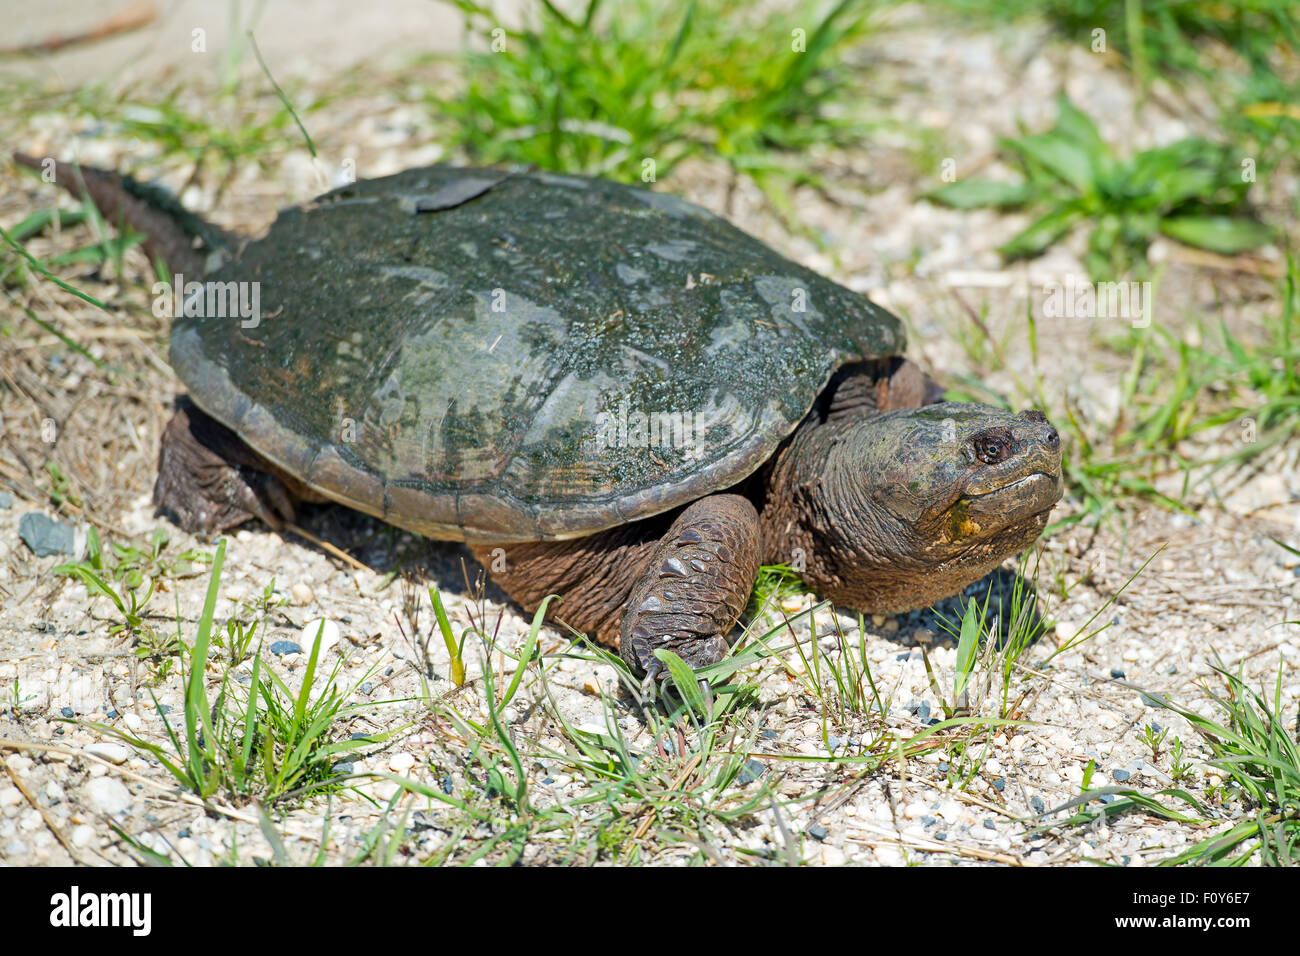 Common Snapping Turtle on Road Stock Photo